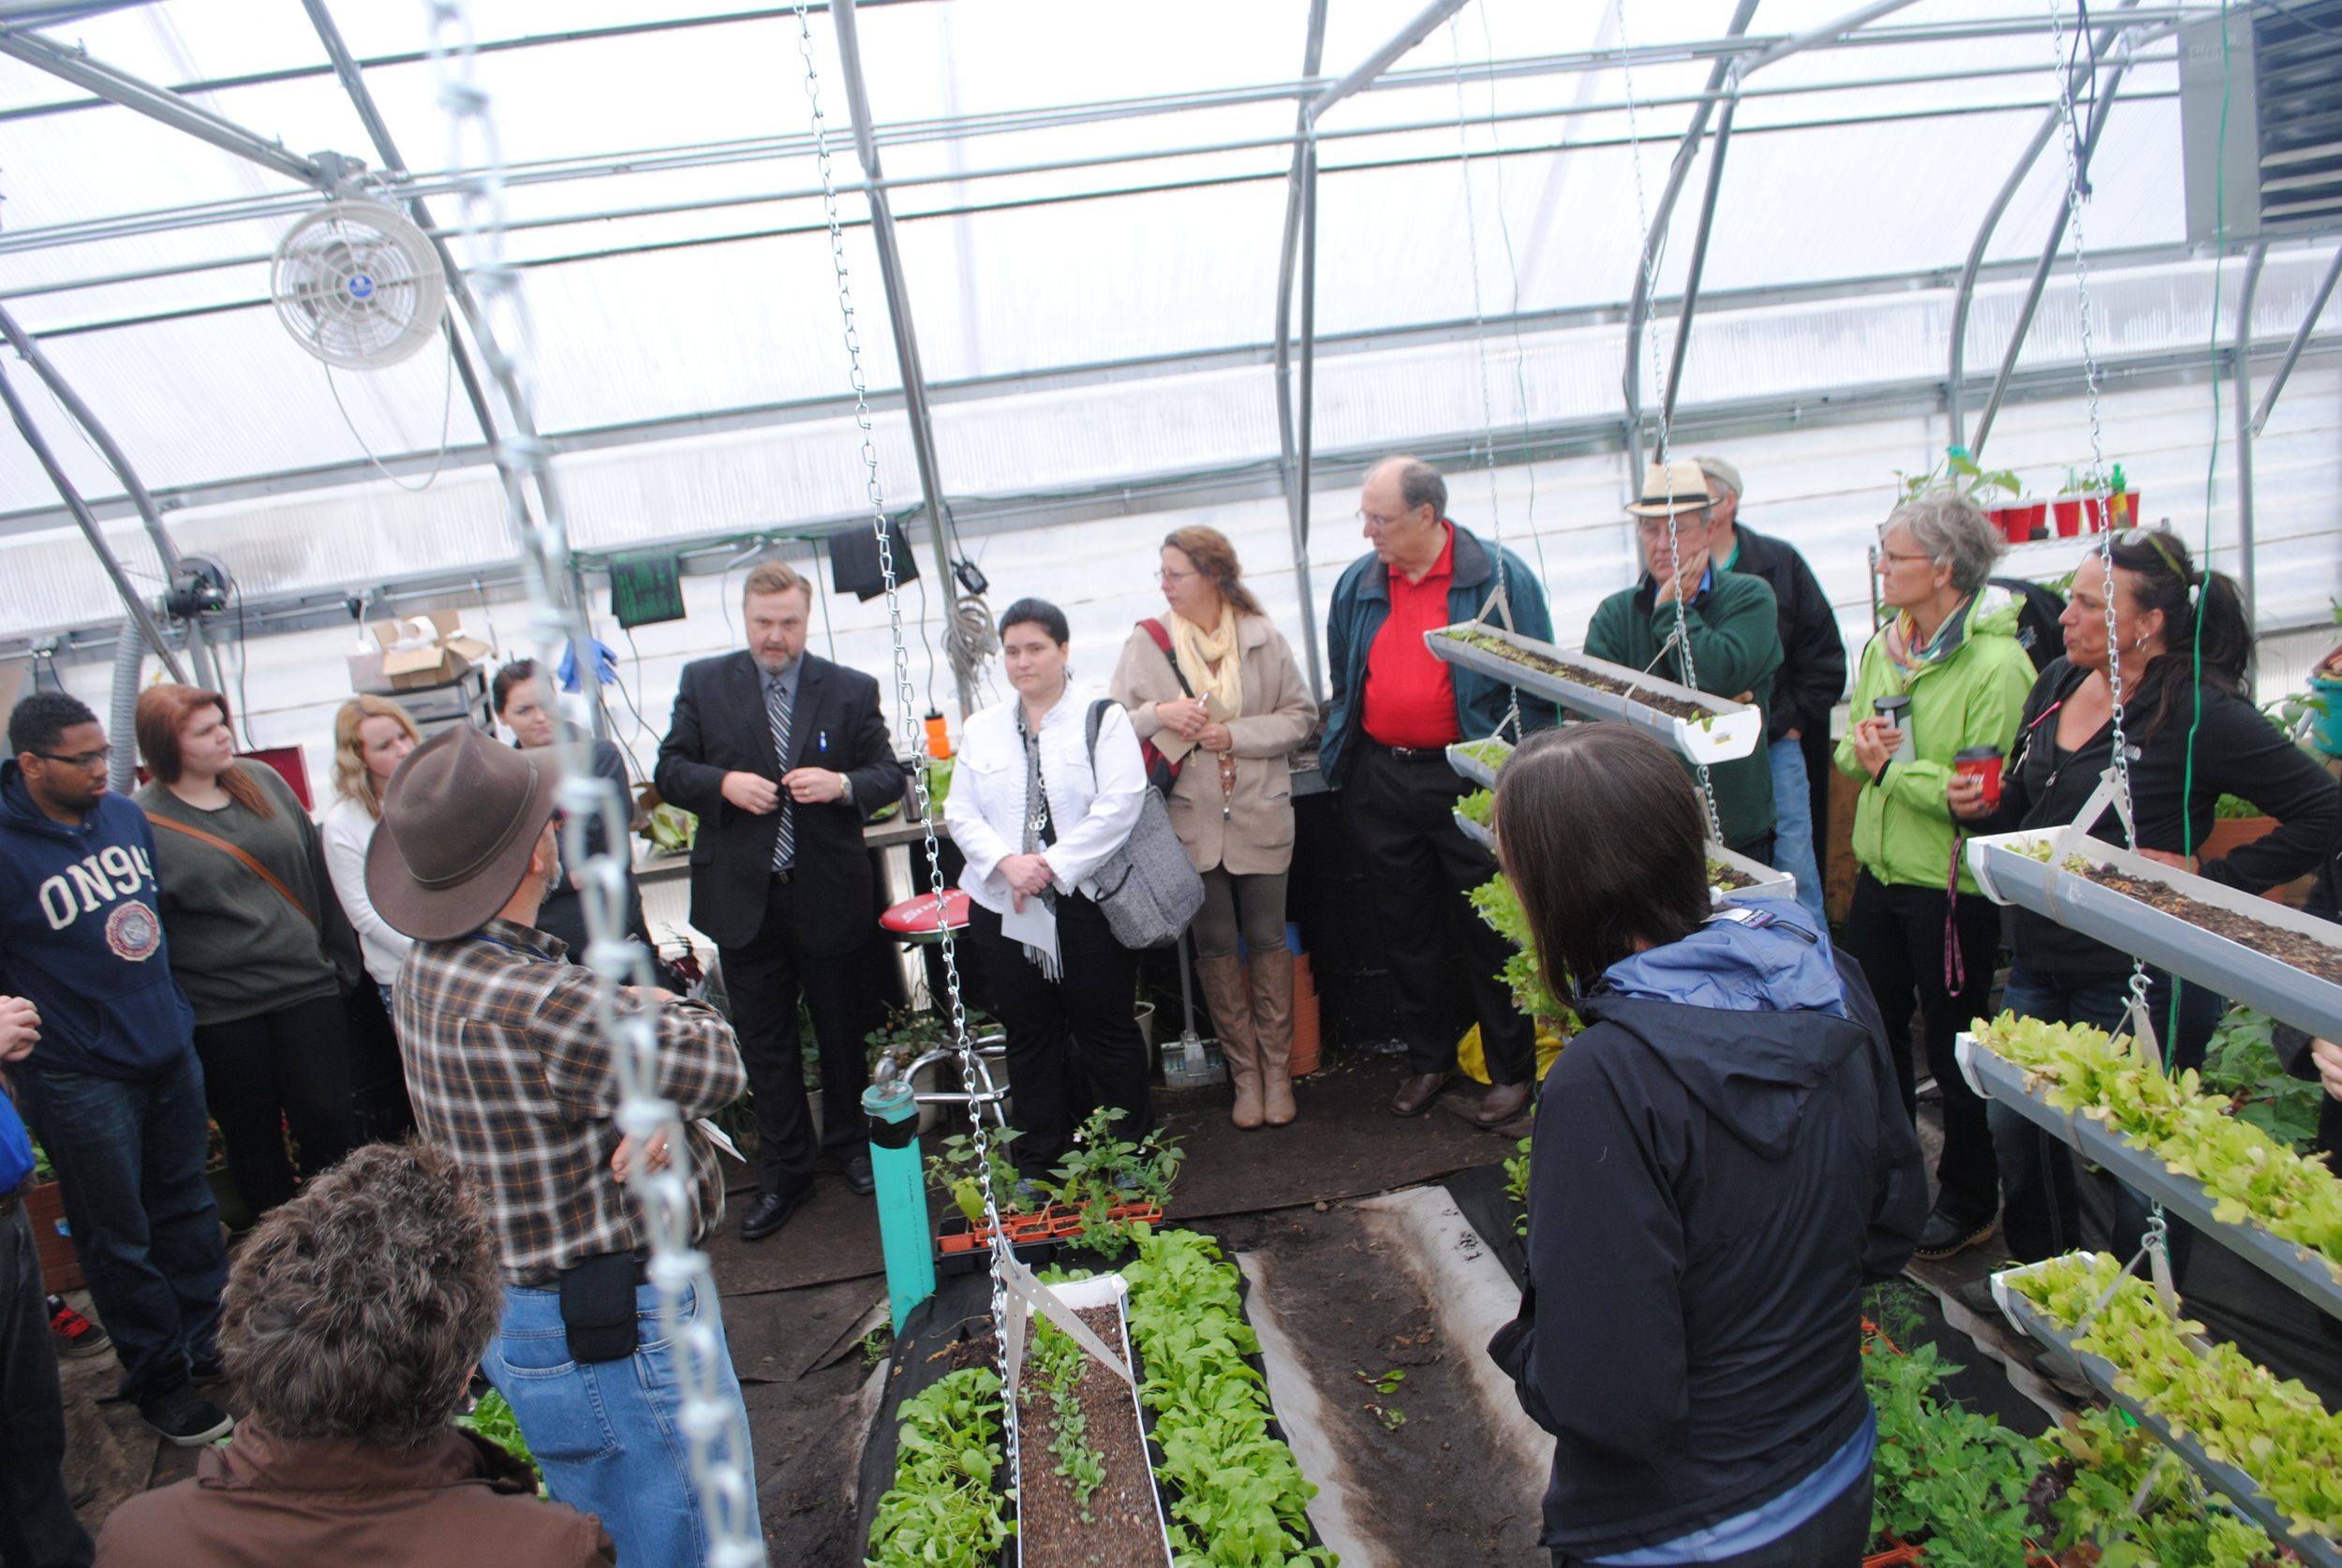 WDC Superintendent Lee Westrum (fifth from left) talks about the funding sources involved in making the greenhouse a viable and successful venture for the school. (Photo by Dana Pavek, WDC Schools)